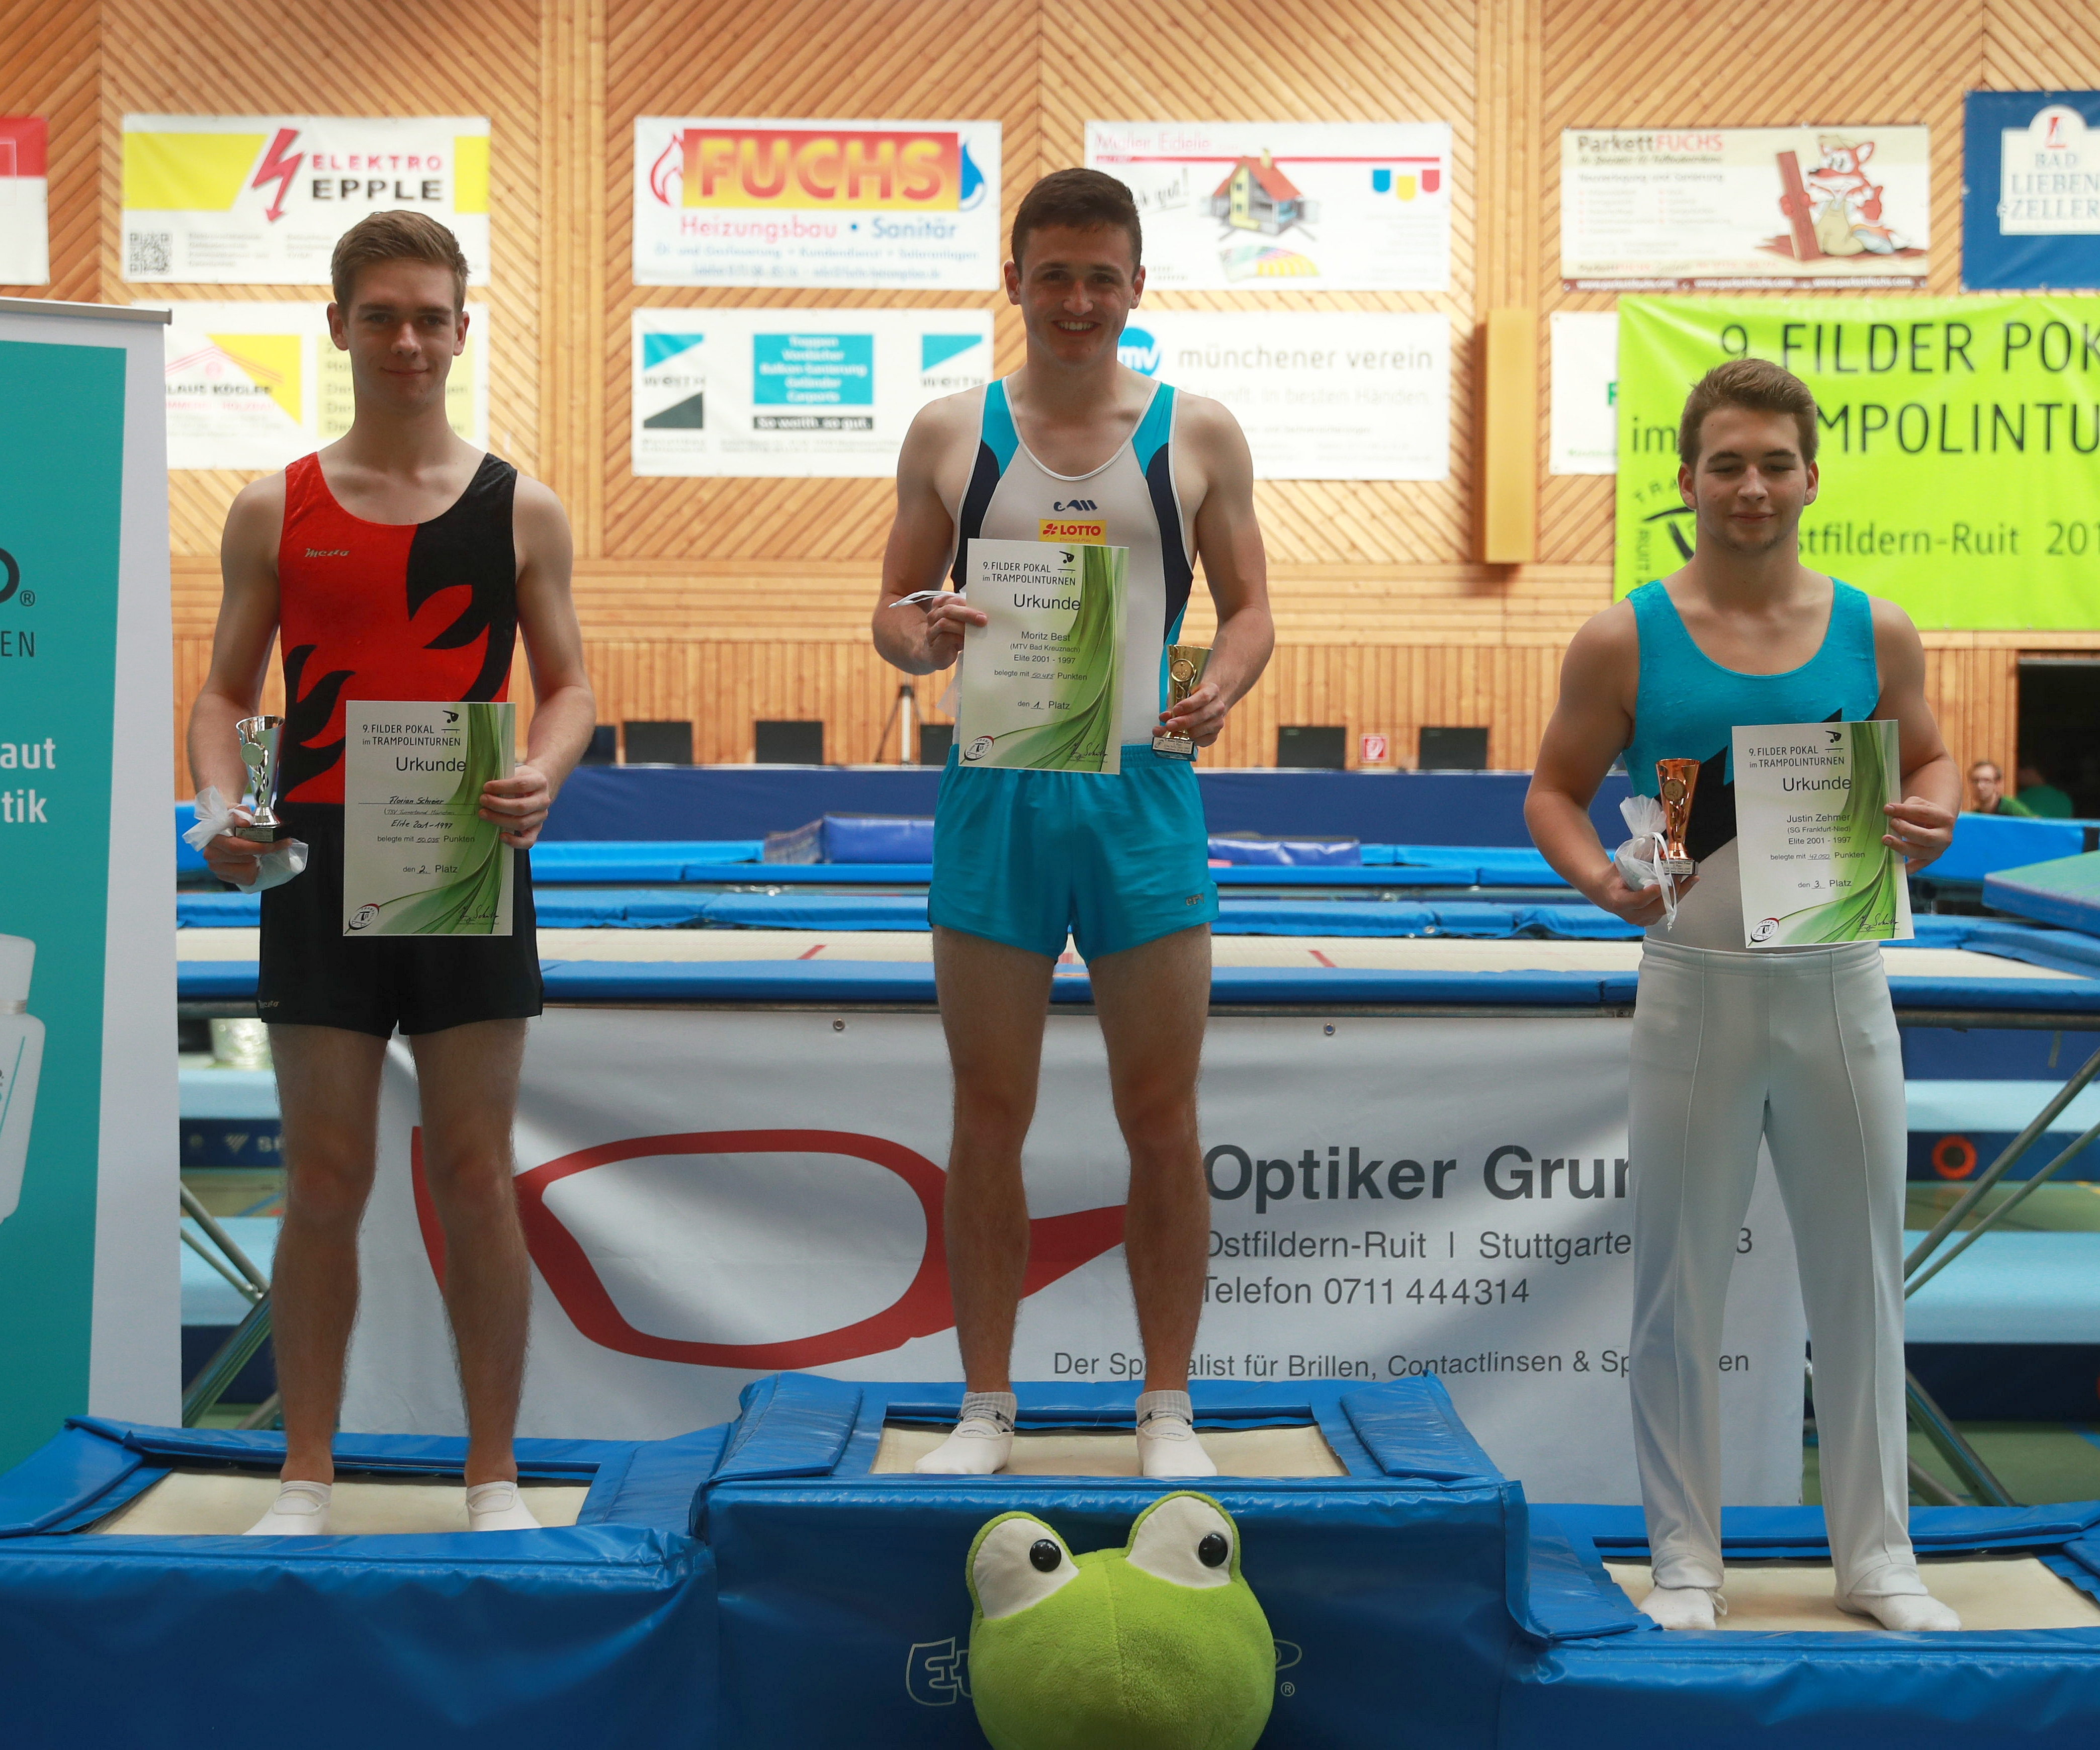 Trampolinturnen 2018 in Ruit. Abgebildet: Florian Schreier. Justin Zehmer. Moritz Best. Date 30 June 2018 Source Own work Author Martin Rulsch, Wikimedia Commons